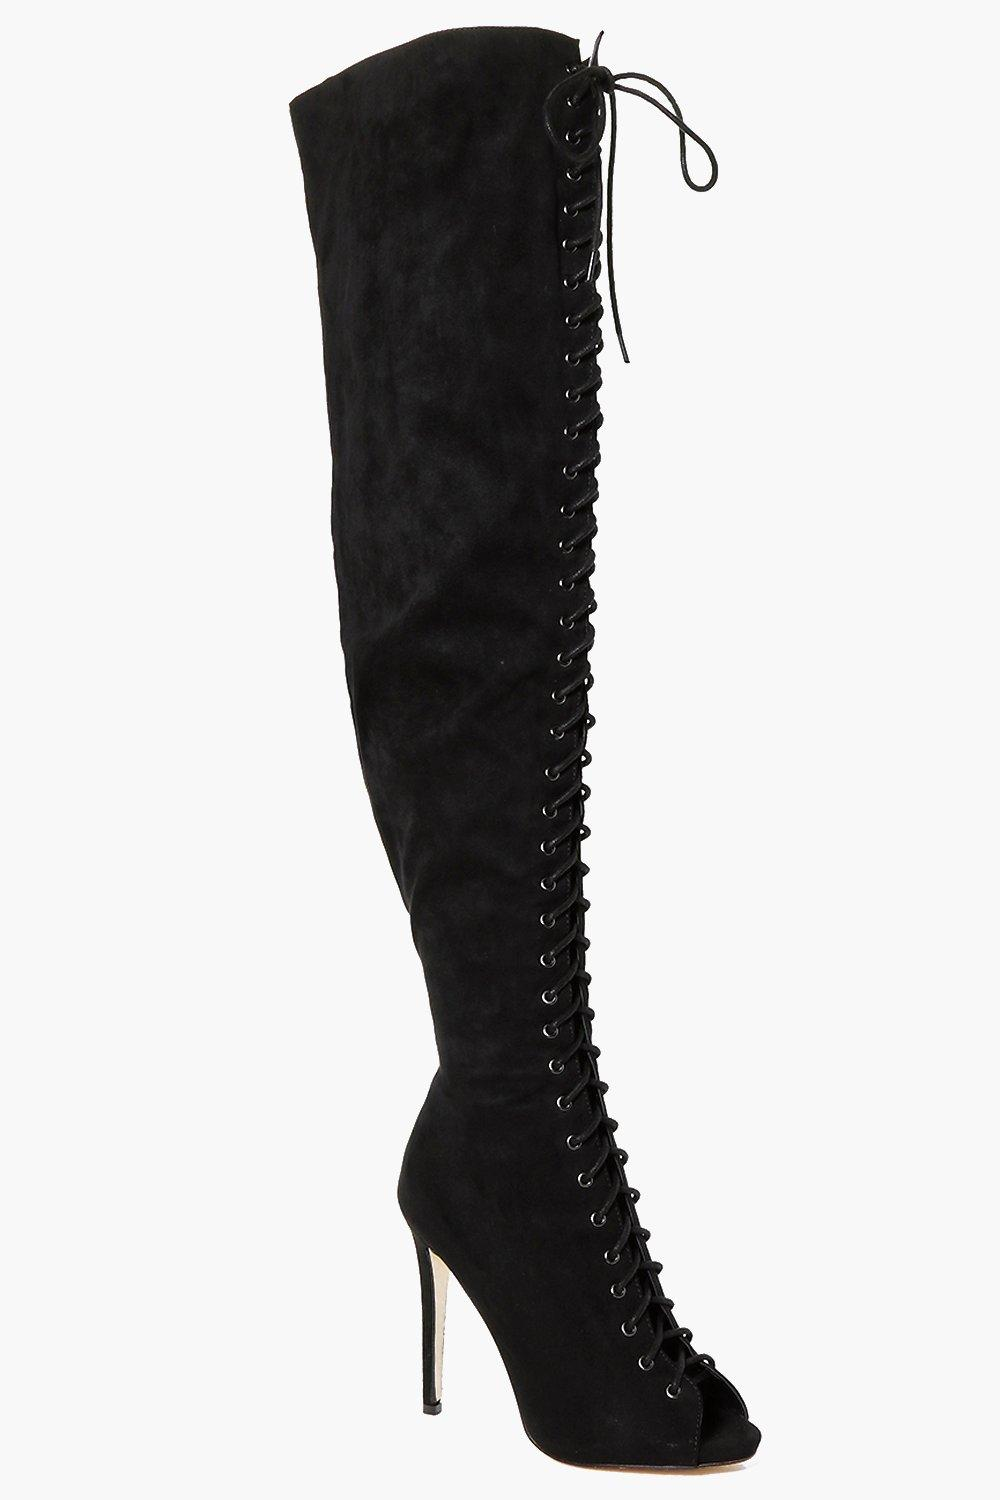 4e524178b3b Lace Up Peeptoe Thigh High Boots. Hover to zoom